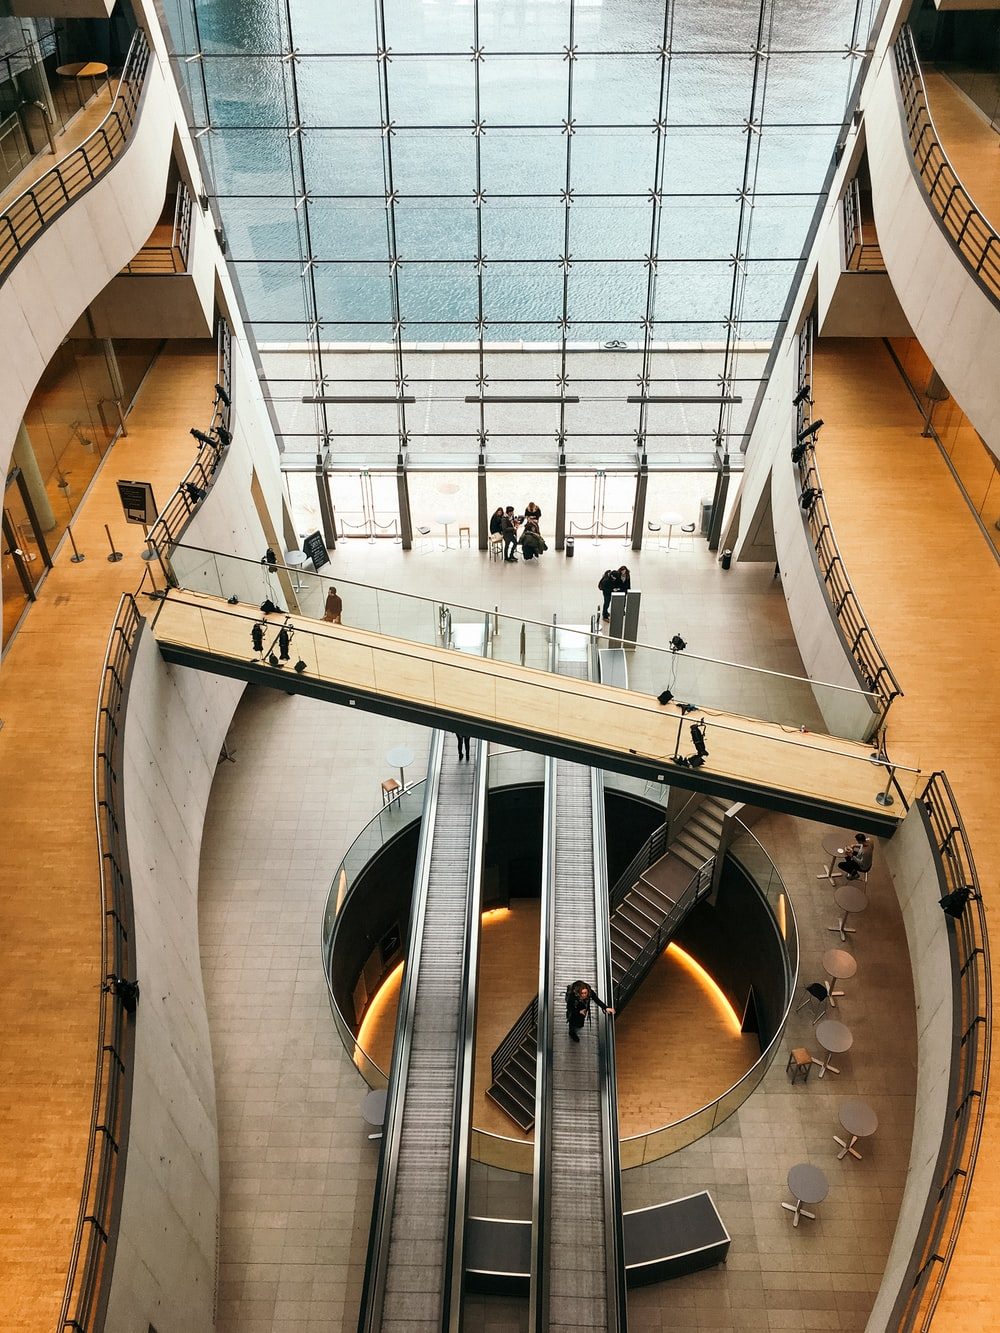 aerial photo of person using escalator indoors